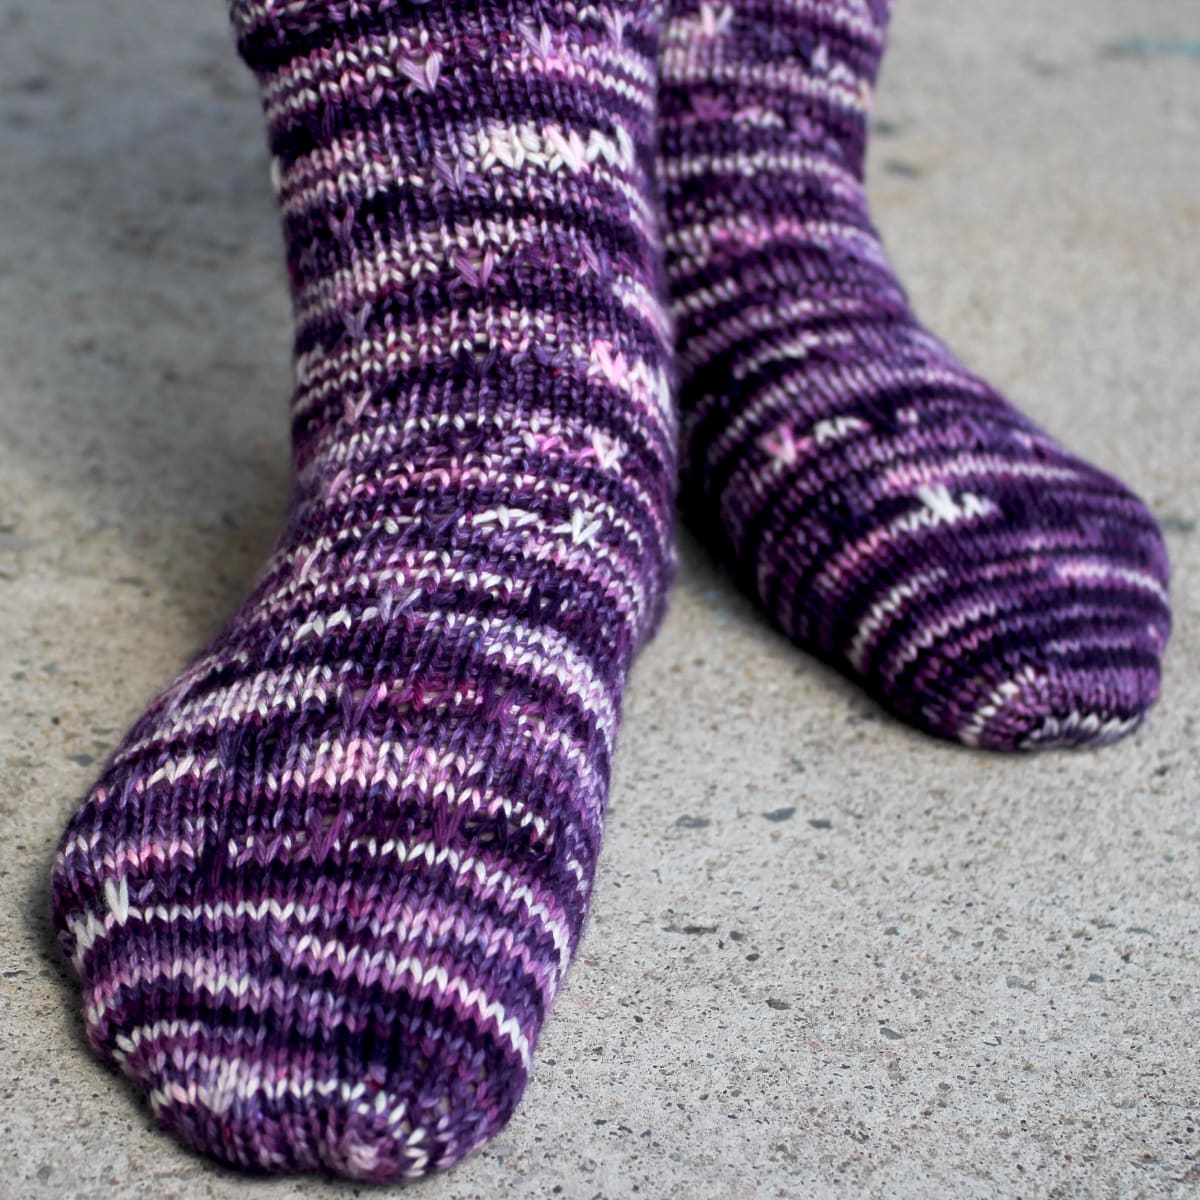 Feet wearing dark purple, pink, and white socks with slipped-stitch texture.